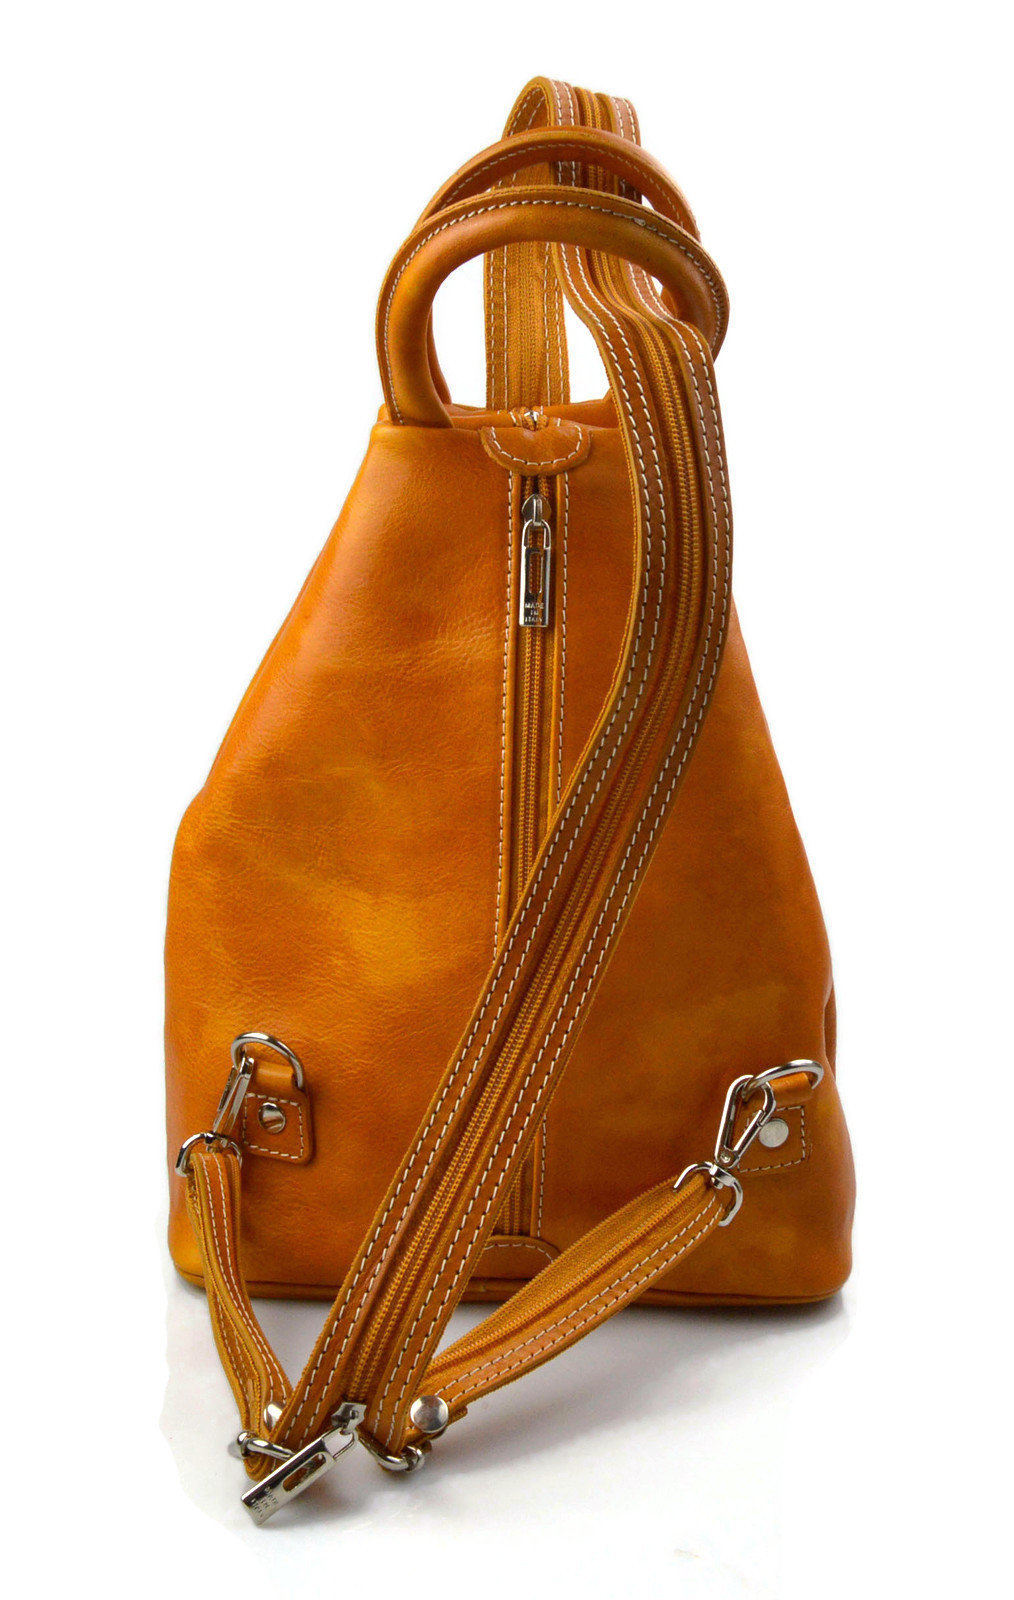 Leather backpack women men yellow travel bag weekender sports bag small backpack image 5